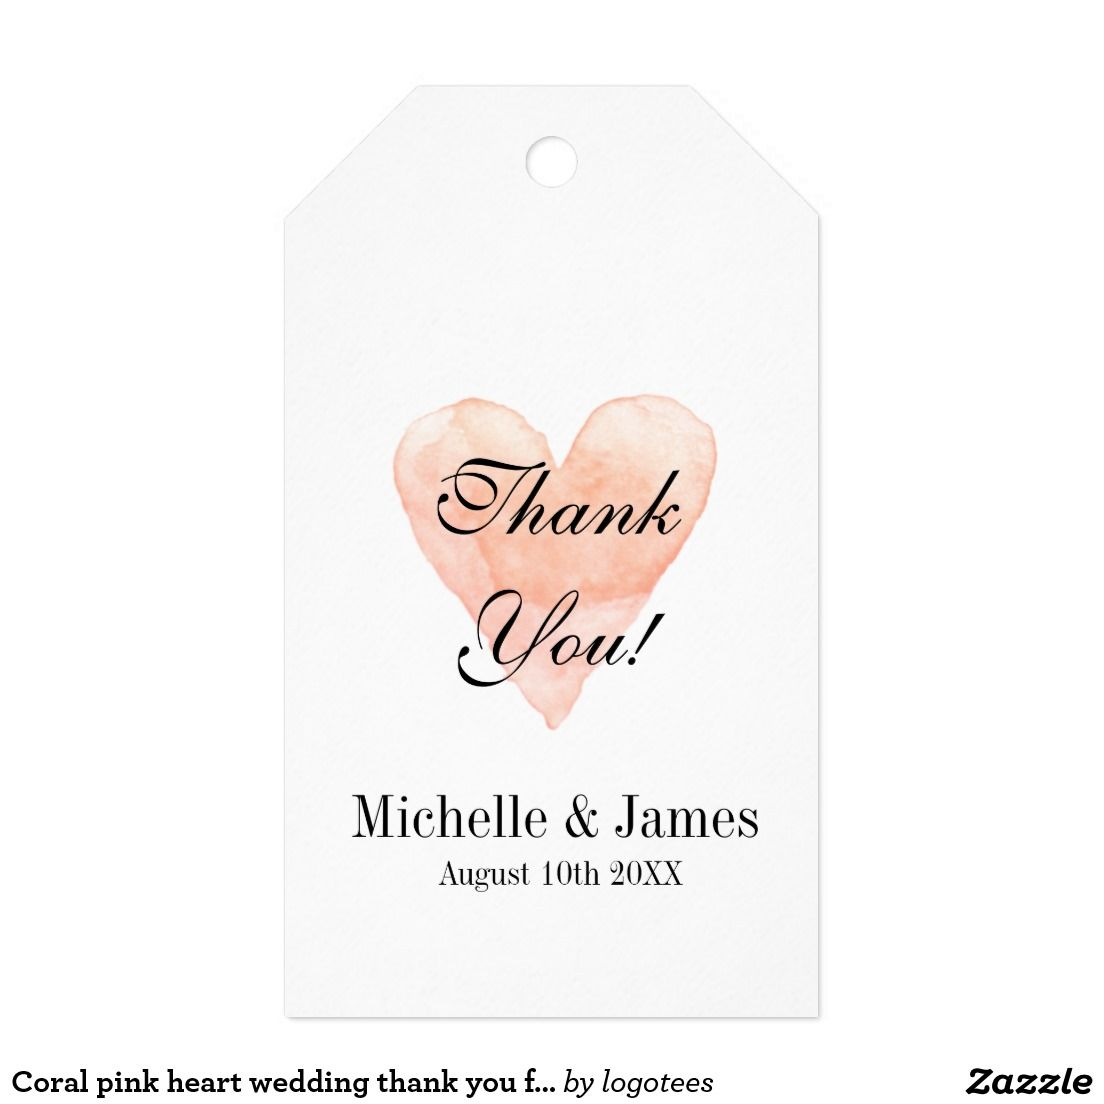 Coral pink heart wedding thank you favor gift tags | Pink, Heart and ...